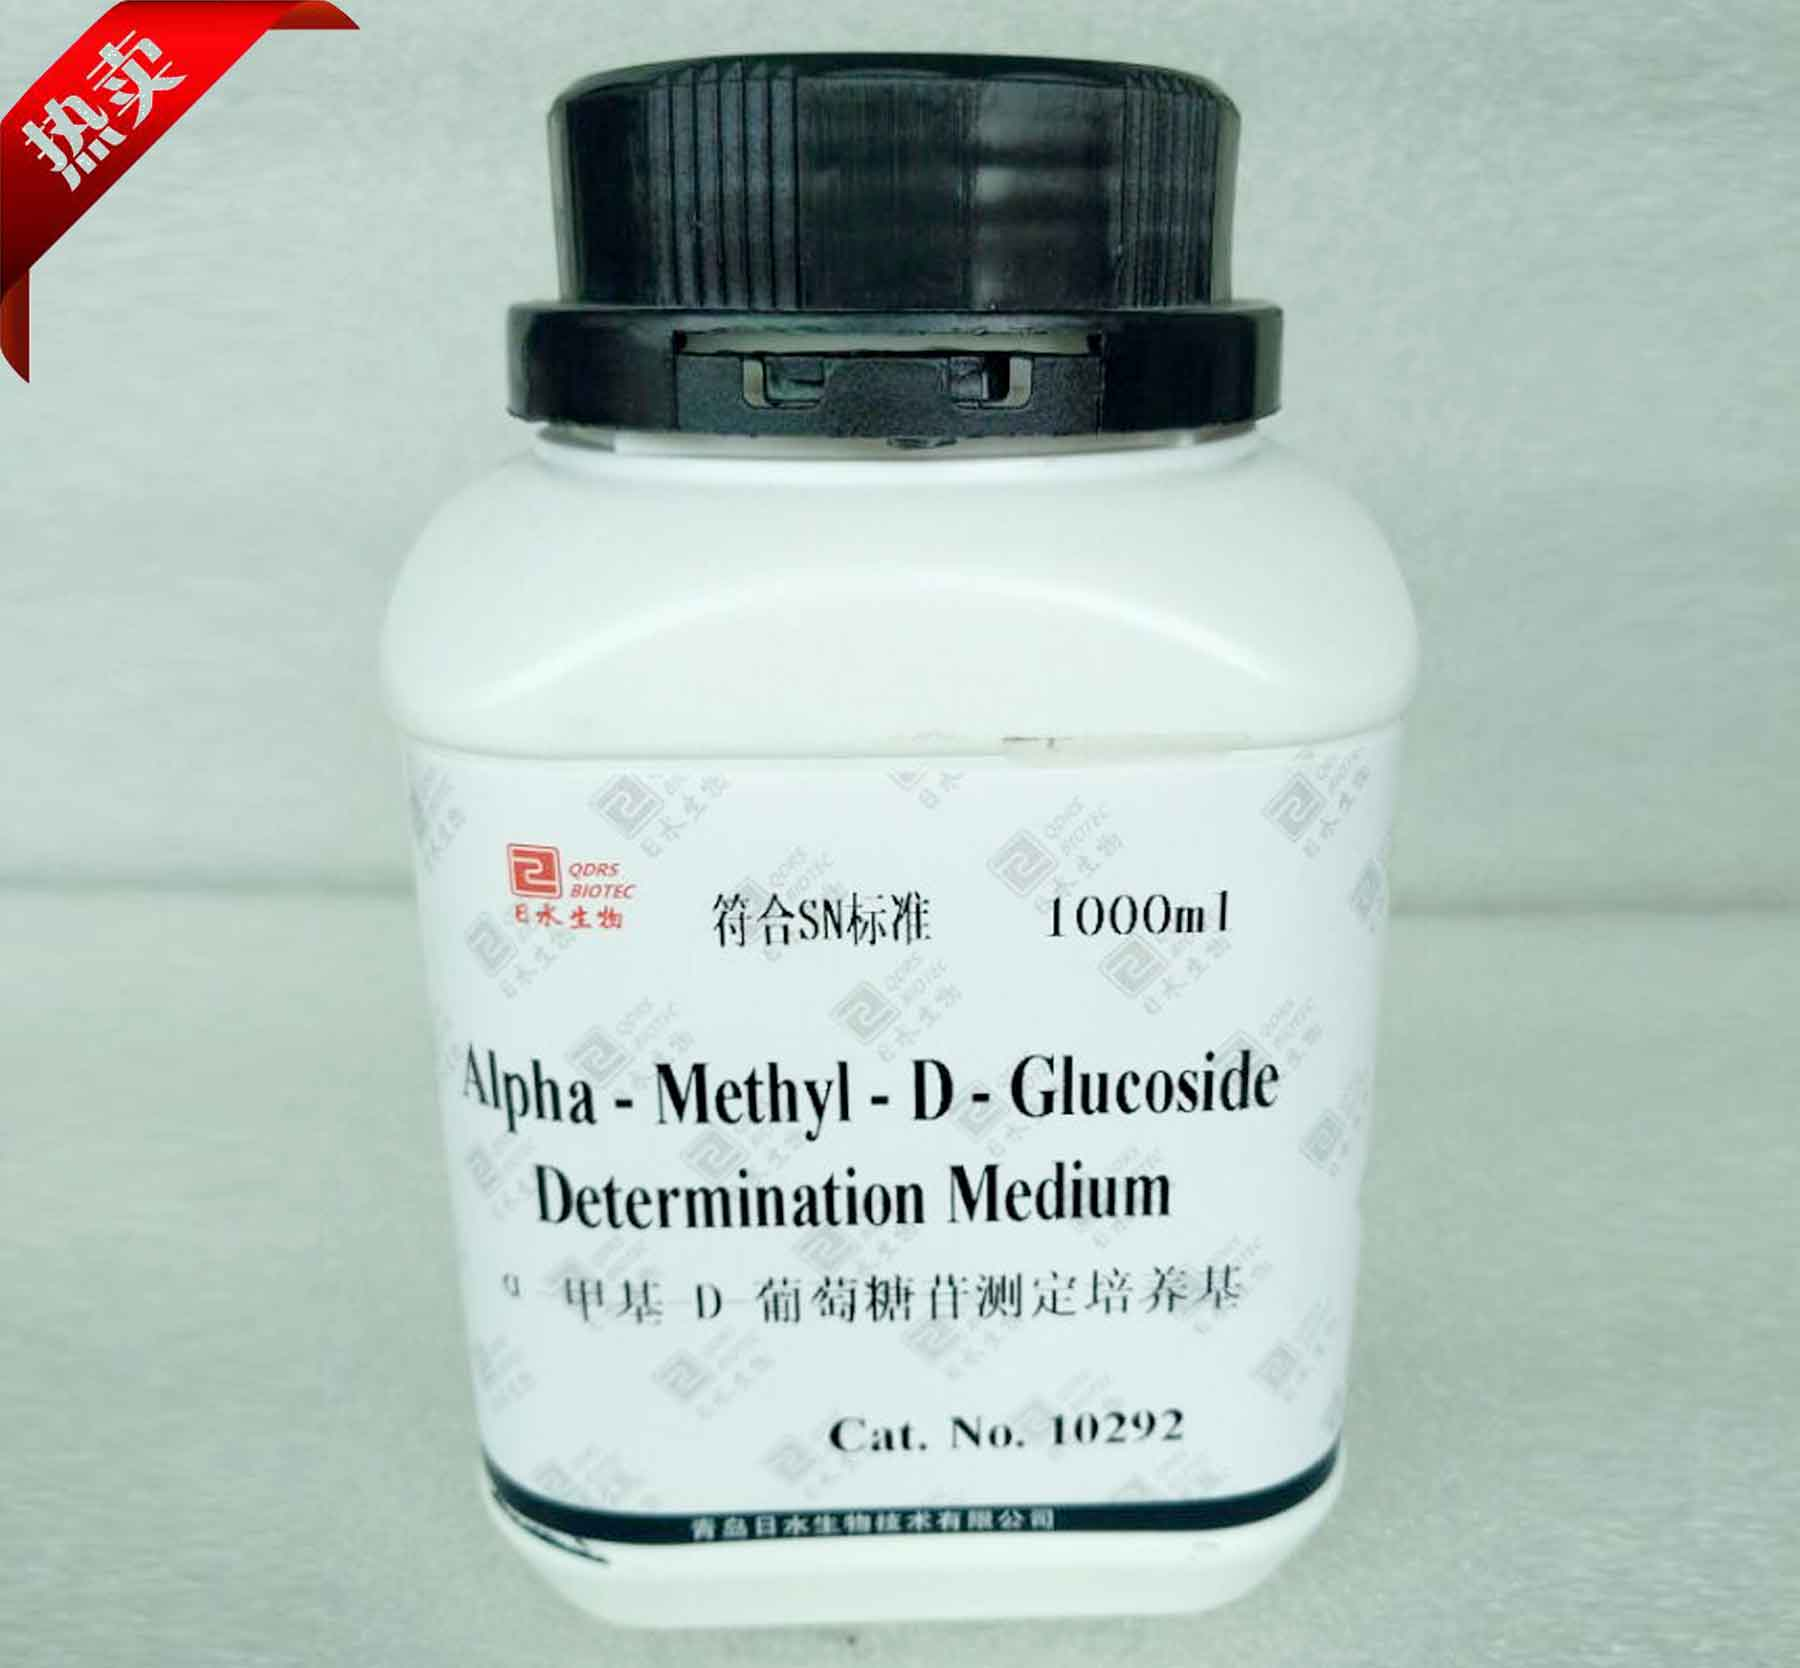 α -甲基-D-葡萄糖苷测定培养基alpha-methyl-d-glucoside determination medium